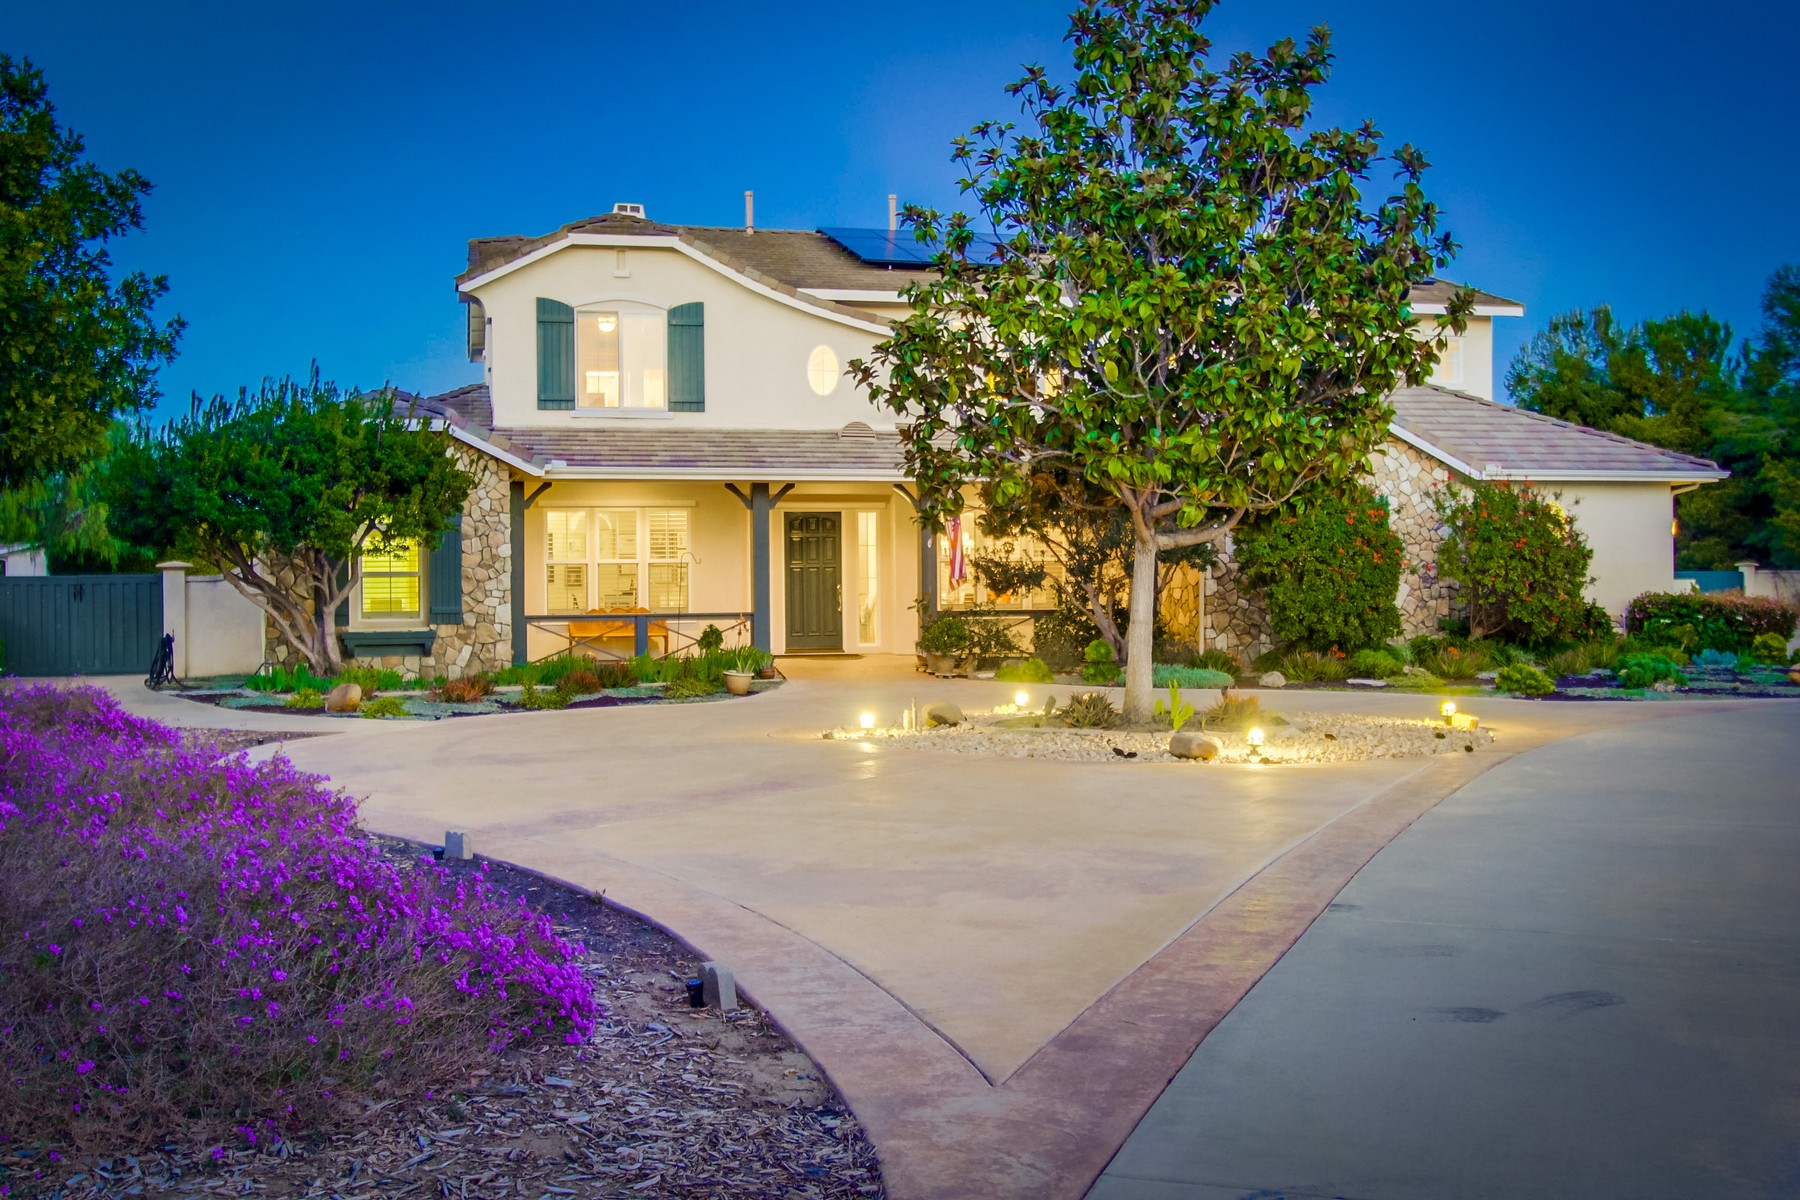 Single Family Home for Sale at 3828 Wendi Court Fallbrook, California 92028 United States